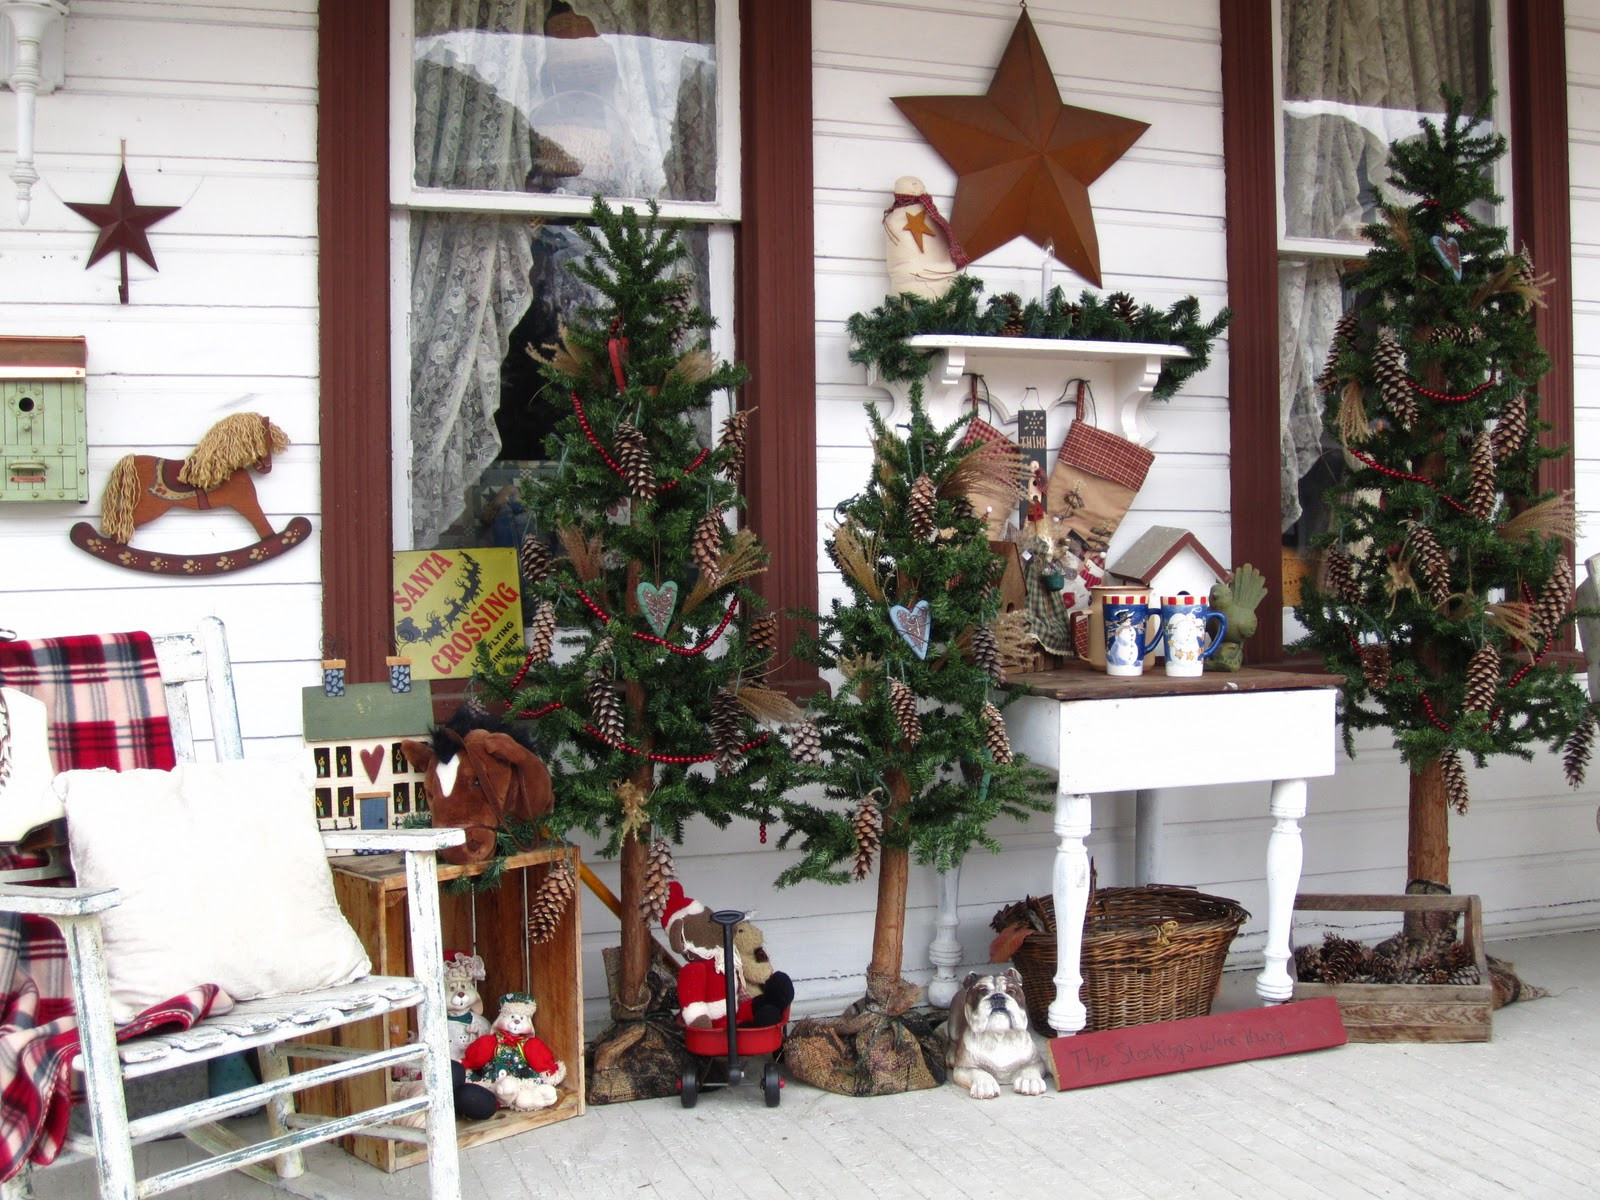 Porch Decor For Christmas  SuesJunkTreasures Rustic Country Christmas on my front